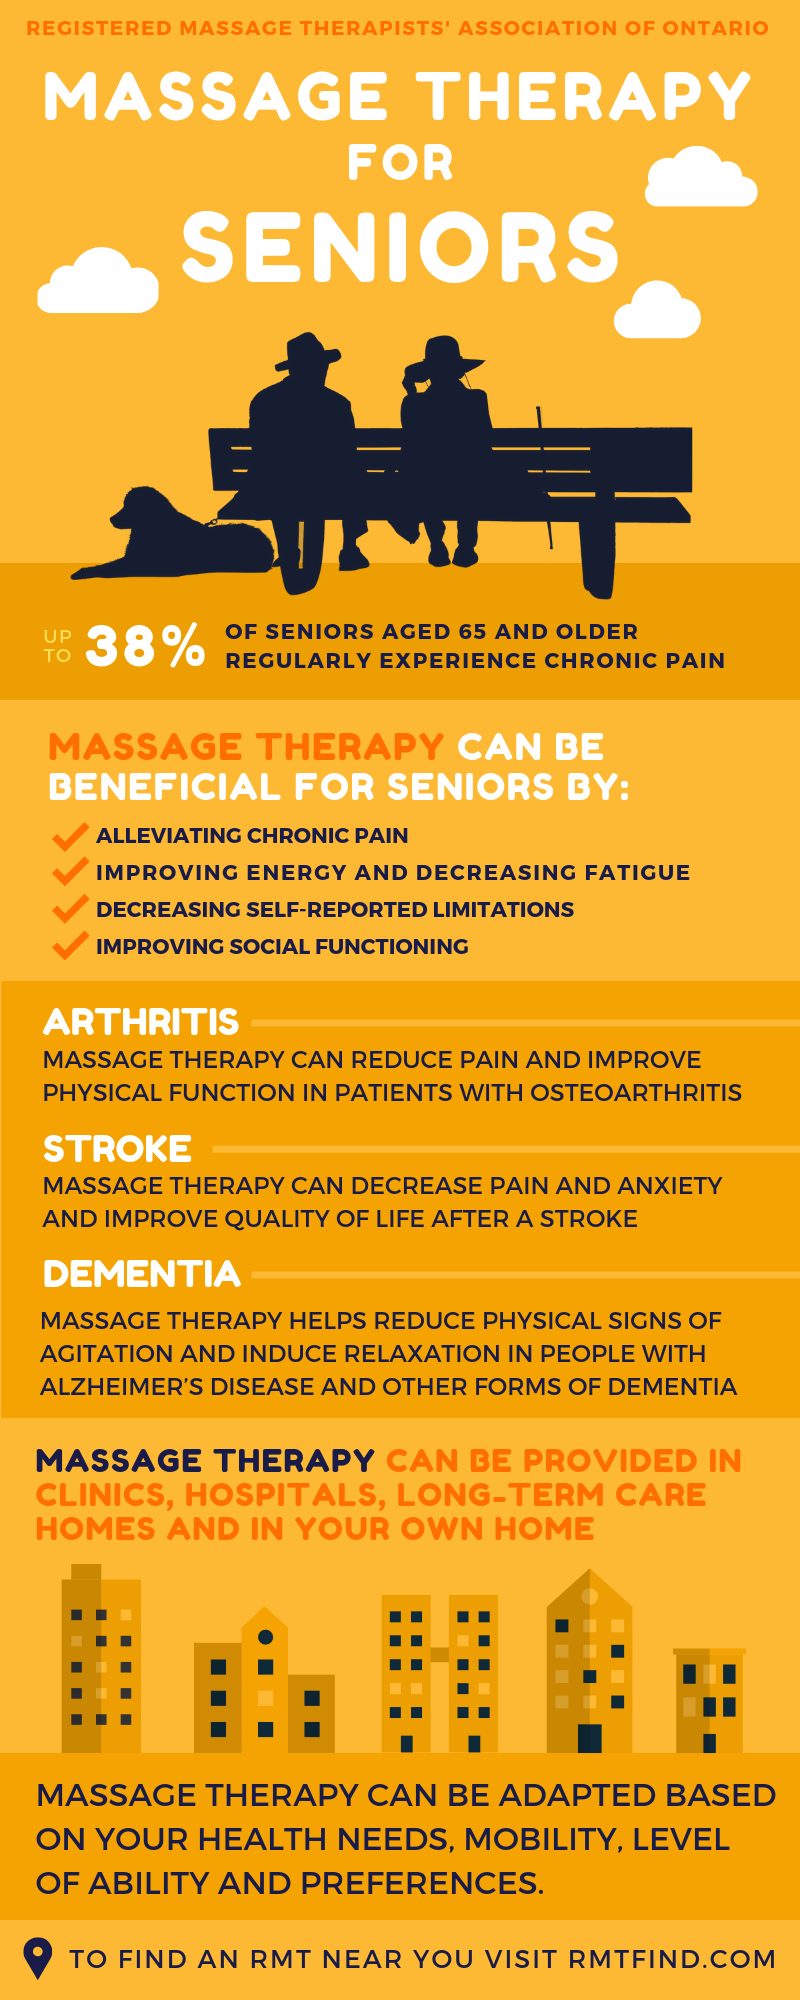 Massage therapy has a growing body of evidence supporting its effectiveness in reducing pain and improving health-related quality of life in a variety of health conditions. Here is an infographic from the Registered Massage Therapists' Association of Ontario (RMTAO), with accompanying links to research below.